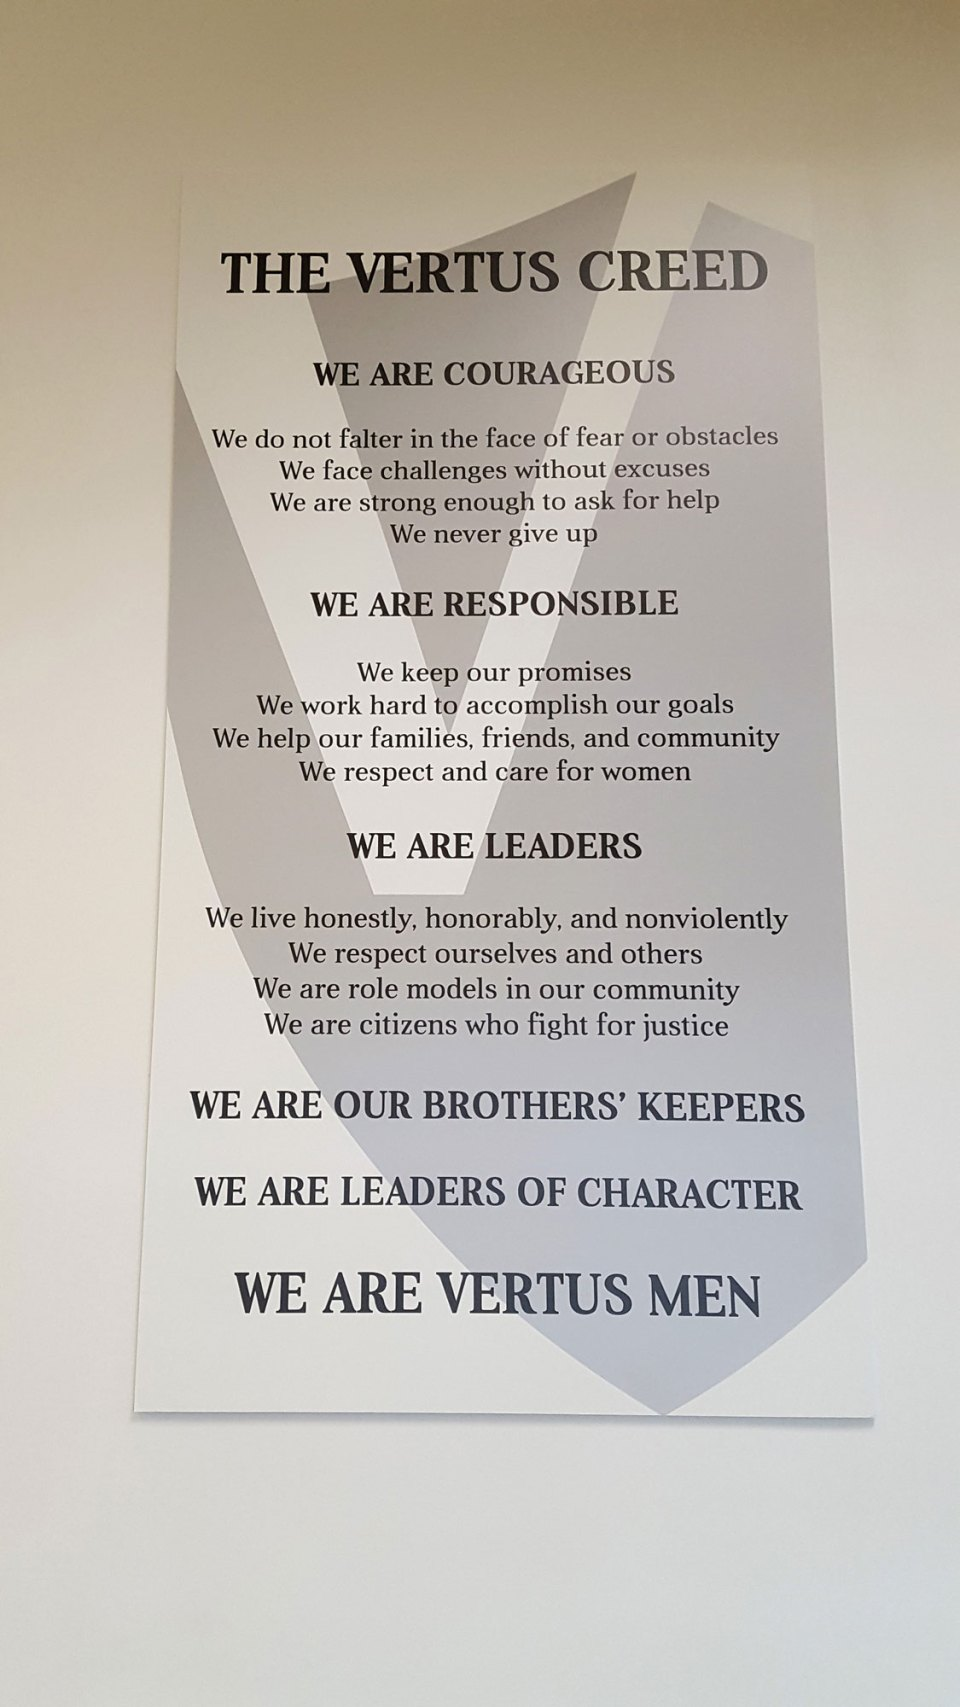 Vertus High School strives to create courageous, responsible, men of character among its student body. Everyone must memorize The Vertus Creed.